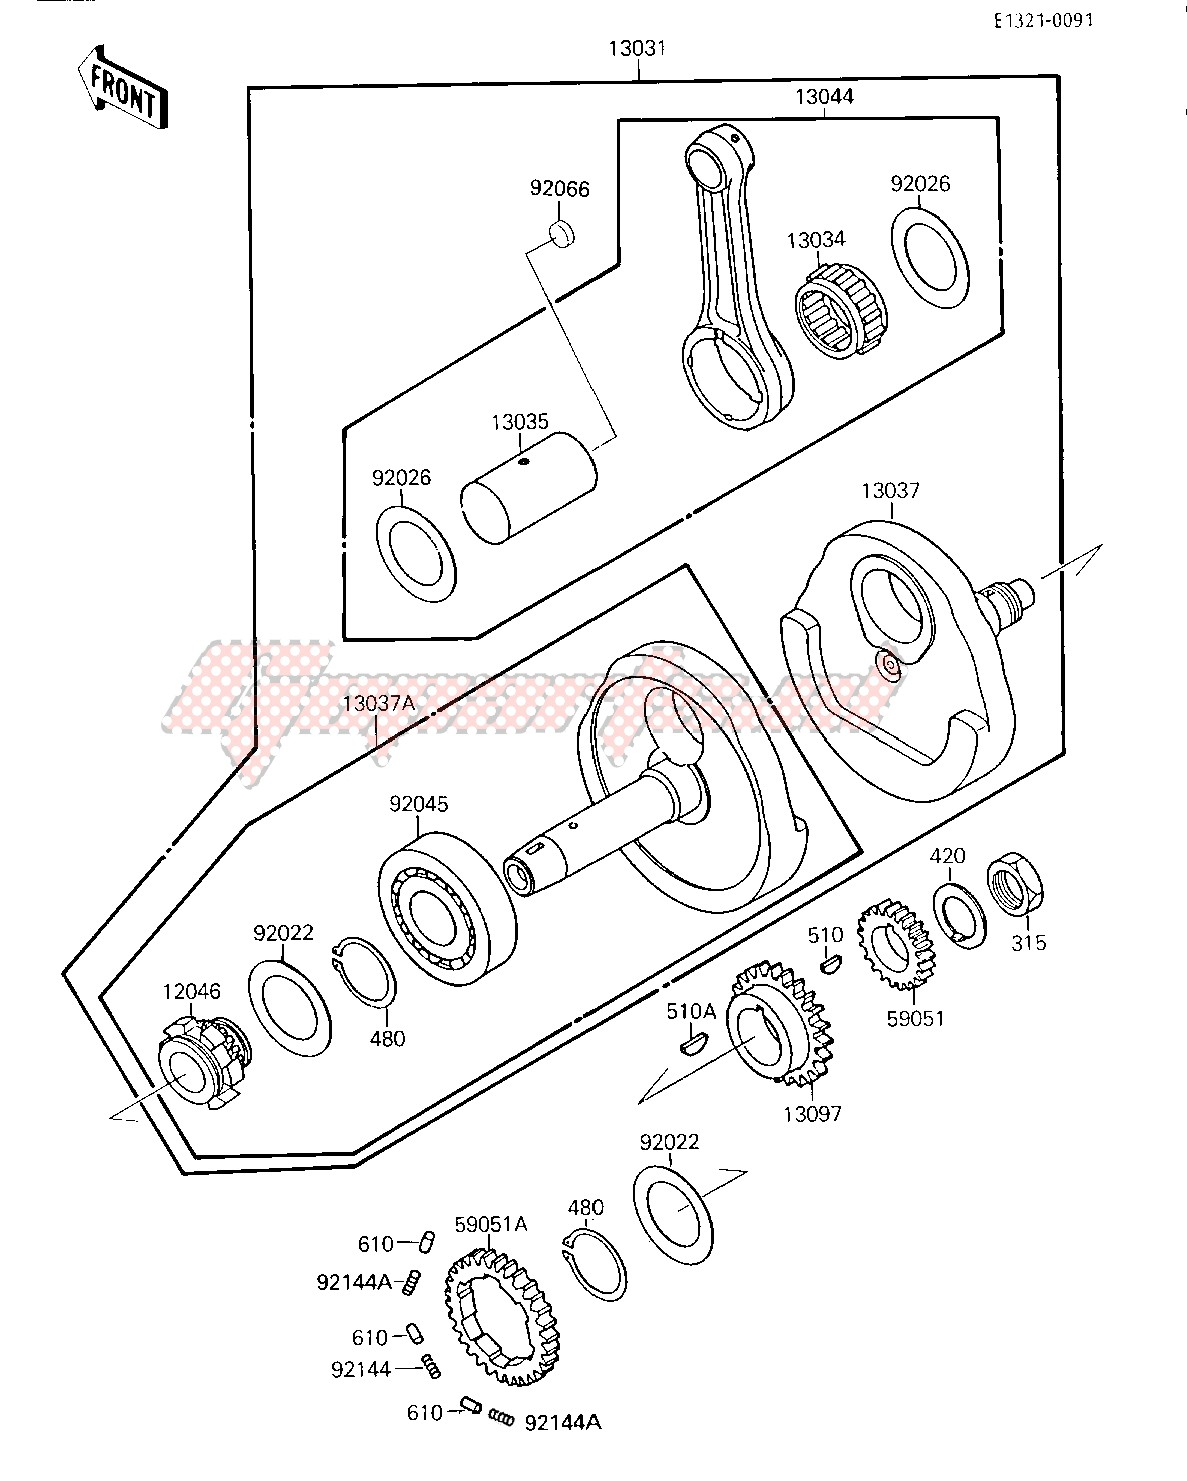 Engine-CRANKSHAFT -- From no. 010528- -